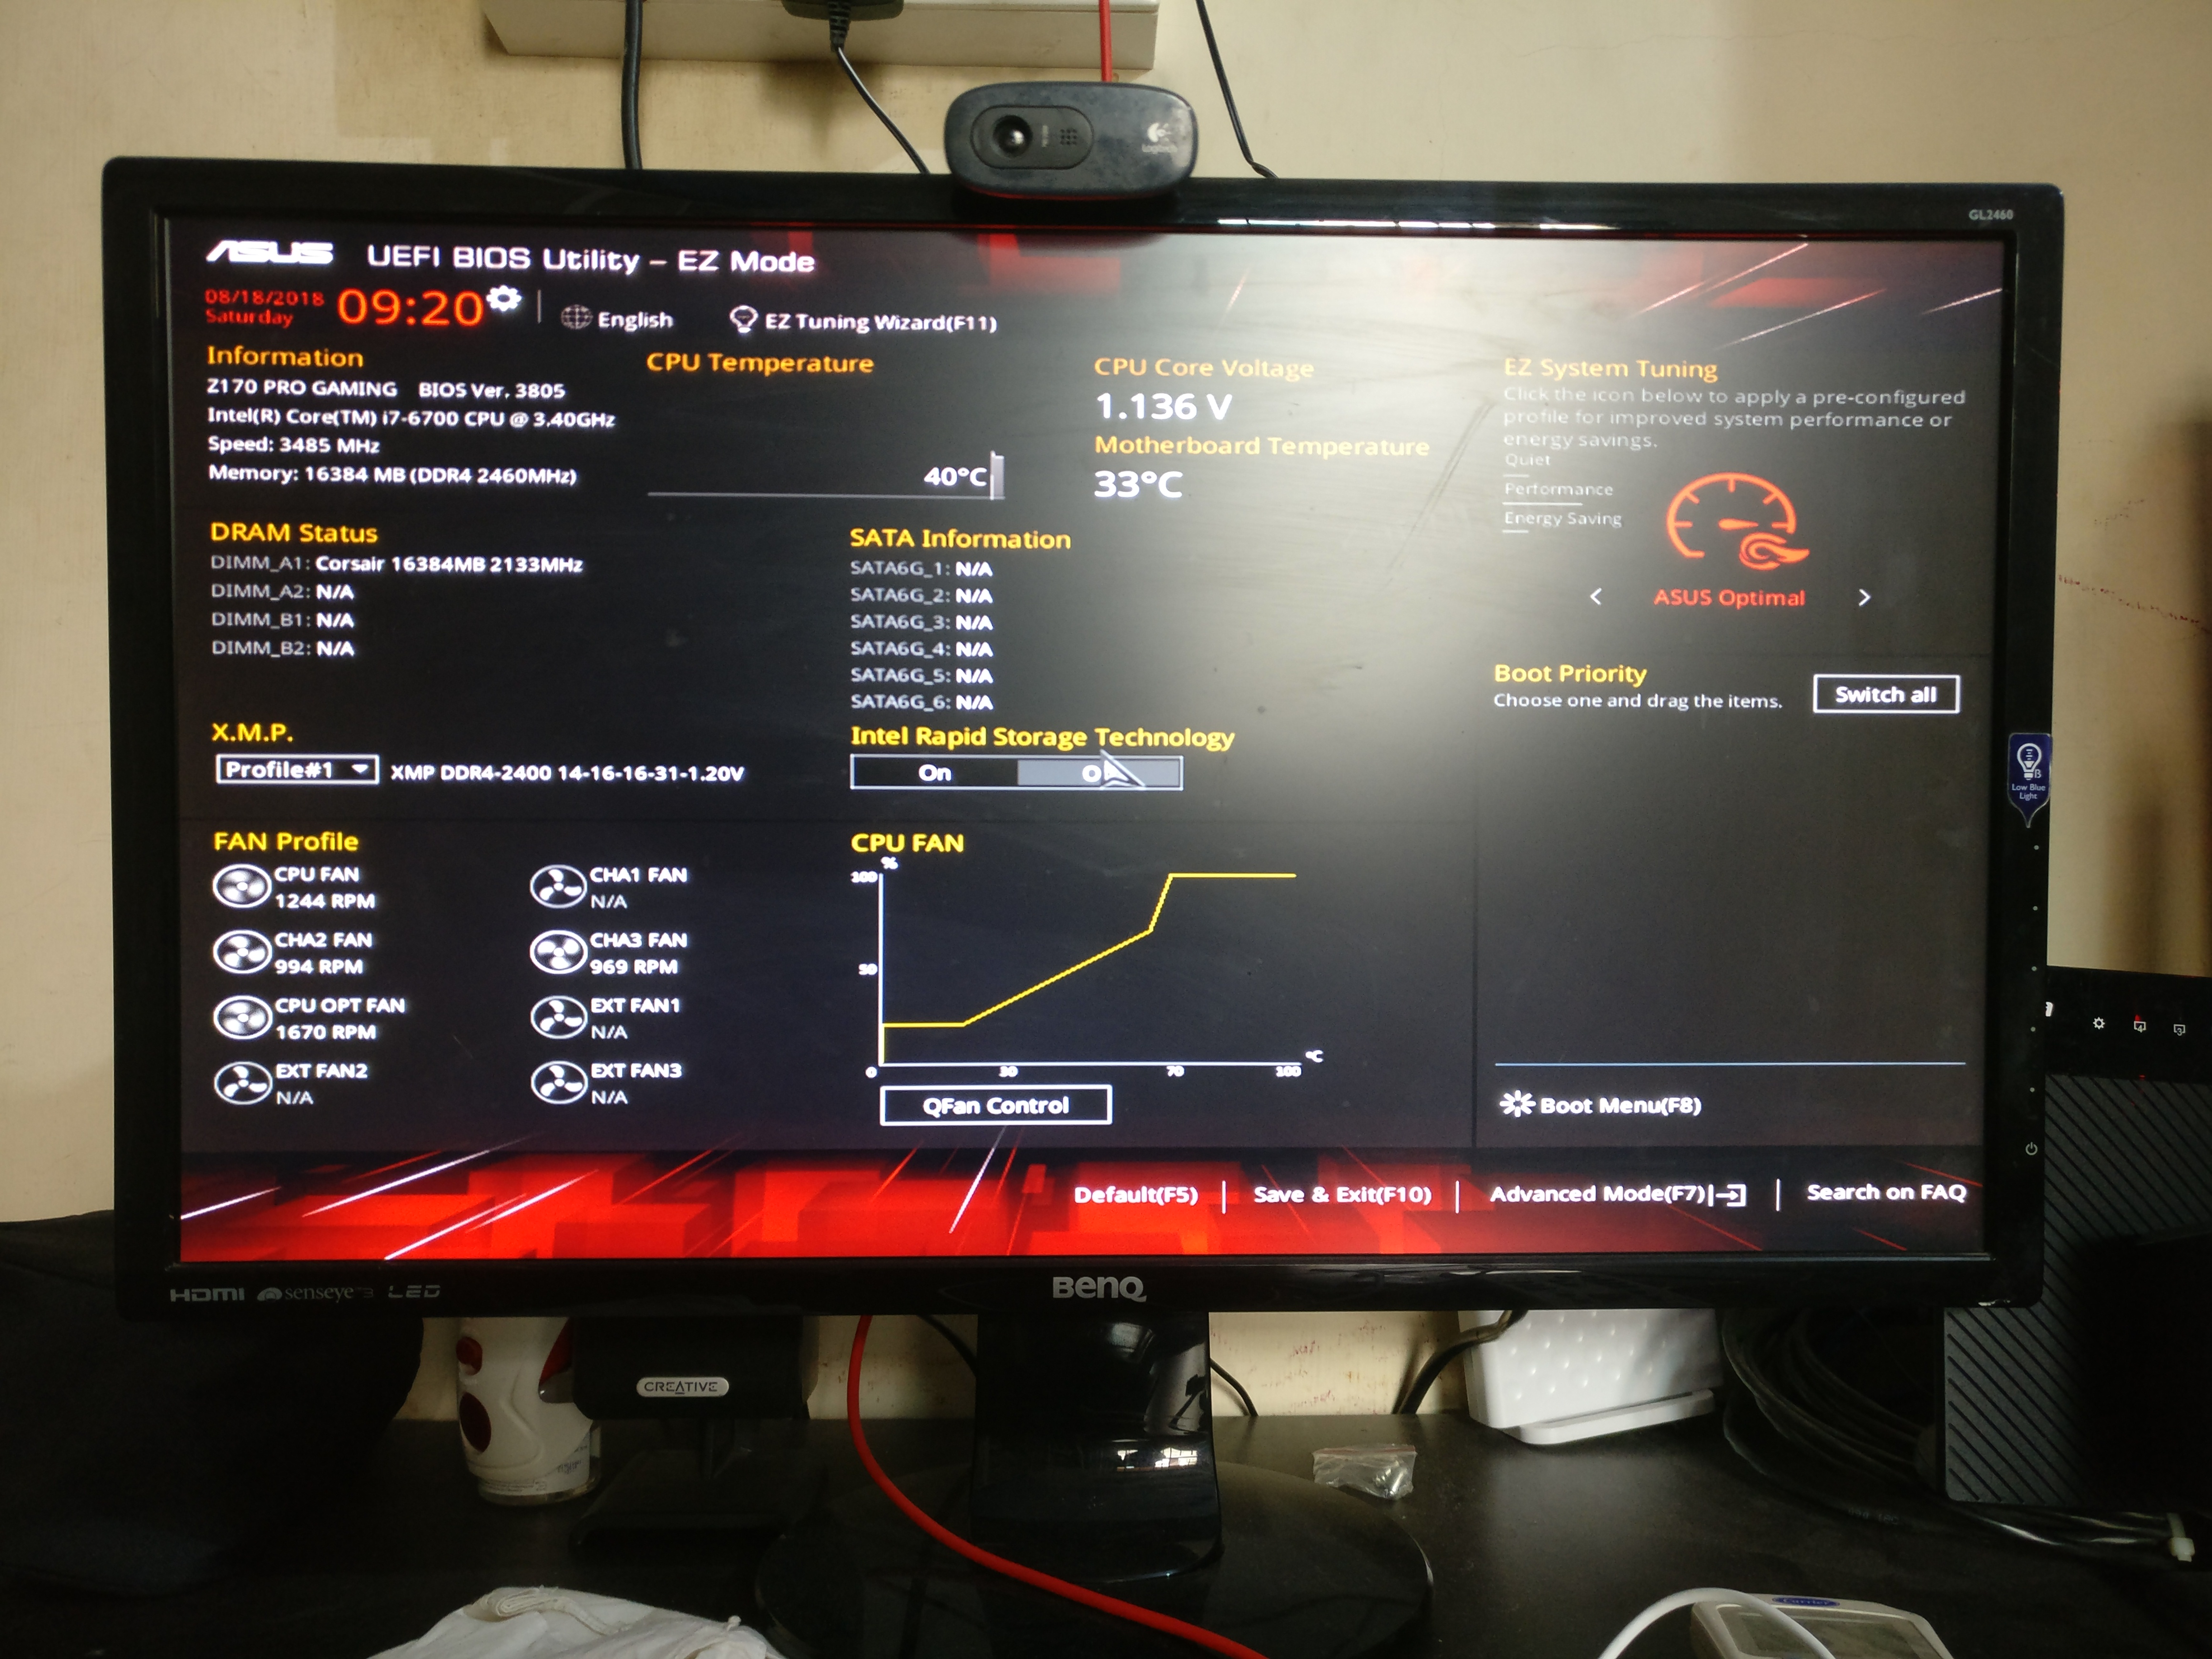 Need help with my WD Black 2TB HDD W/ Asus Z170 Pro Gaming MB